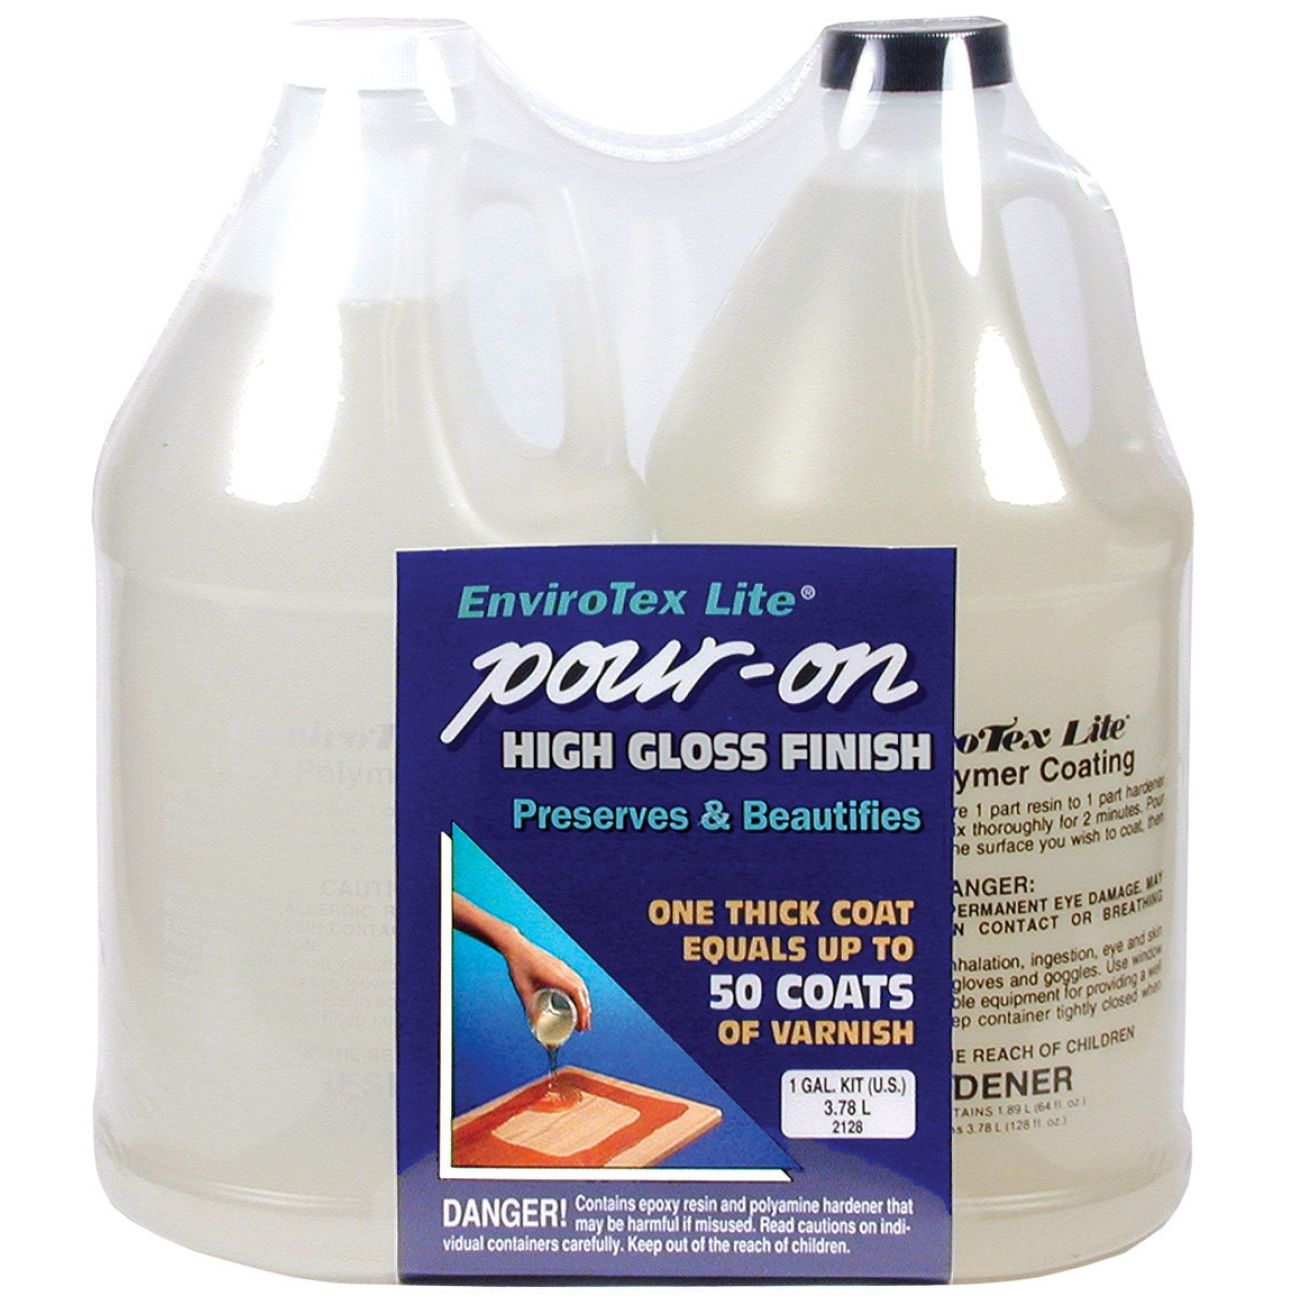 Pour on high gloss finish how to use